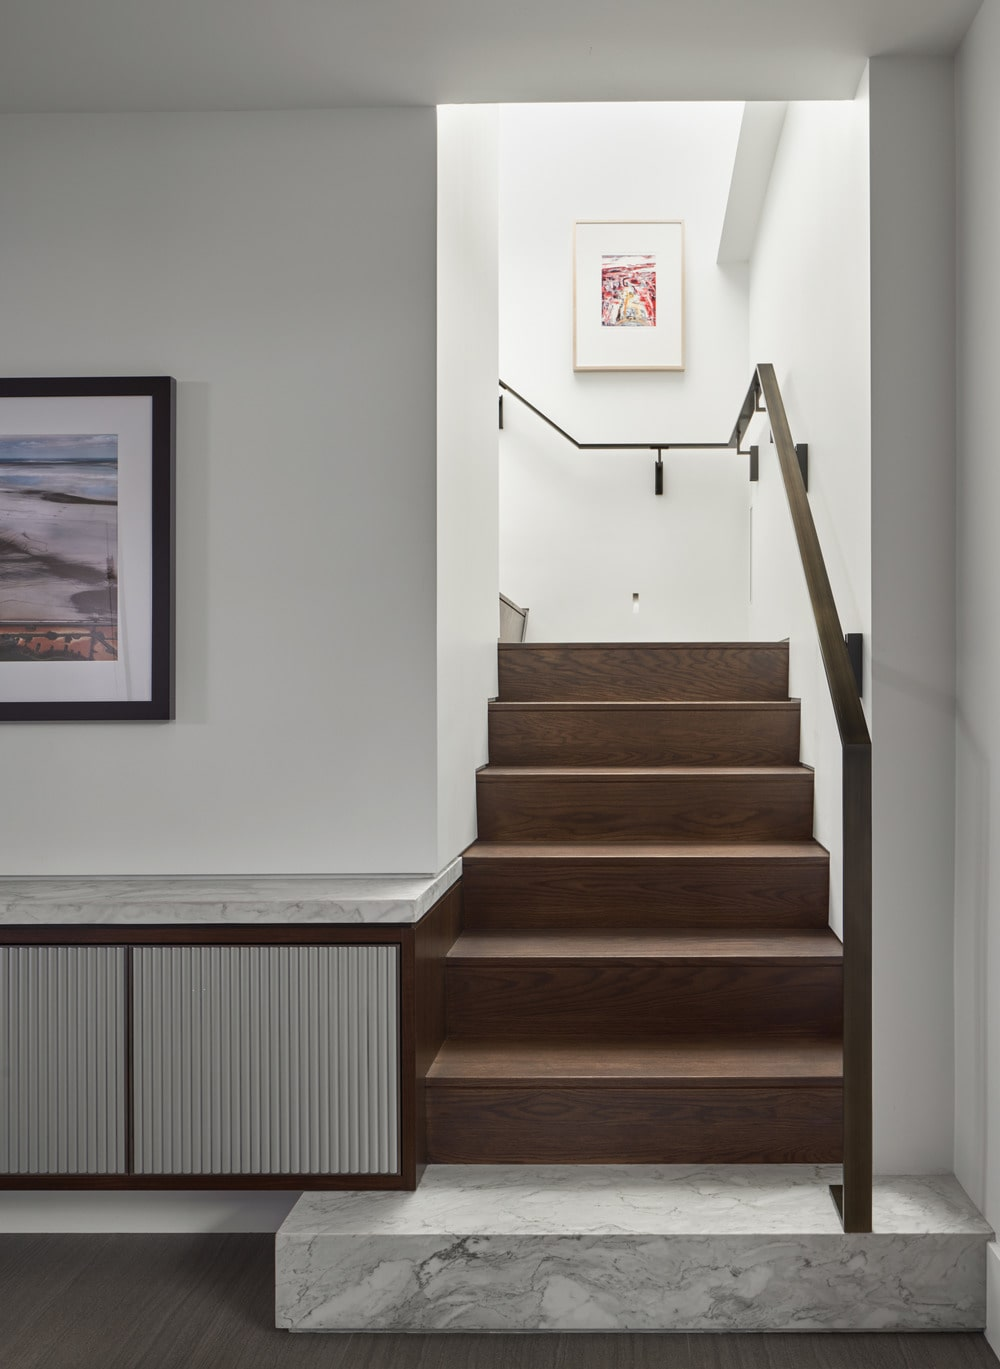 This is a look at the staircase of the house that has wooden steps that match the wooden handrails.